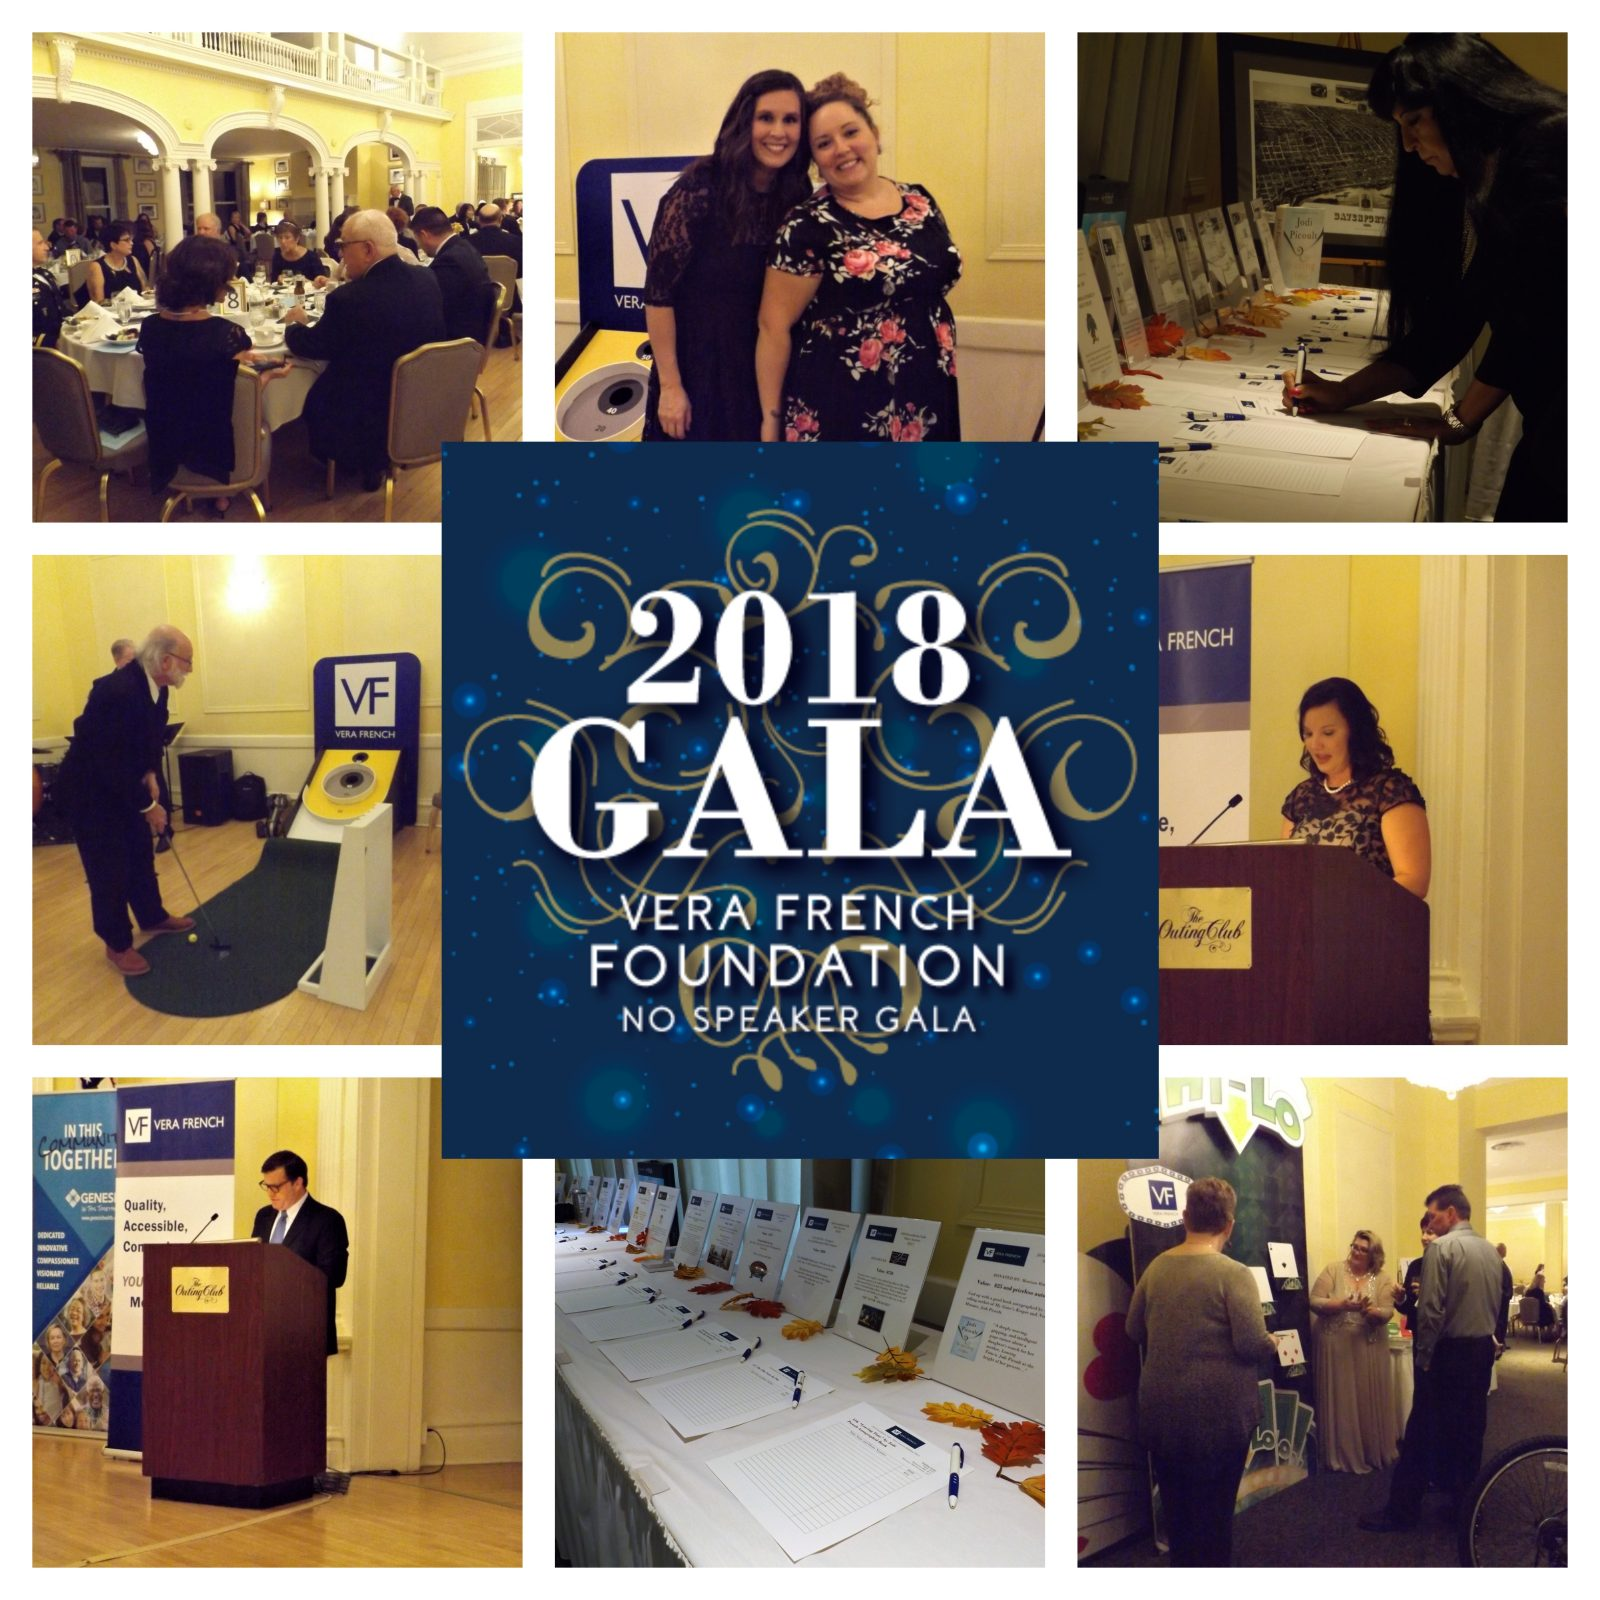 Collage of Vera French 2018 Gala event